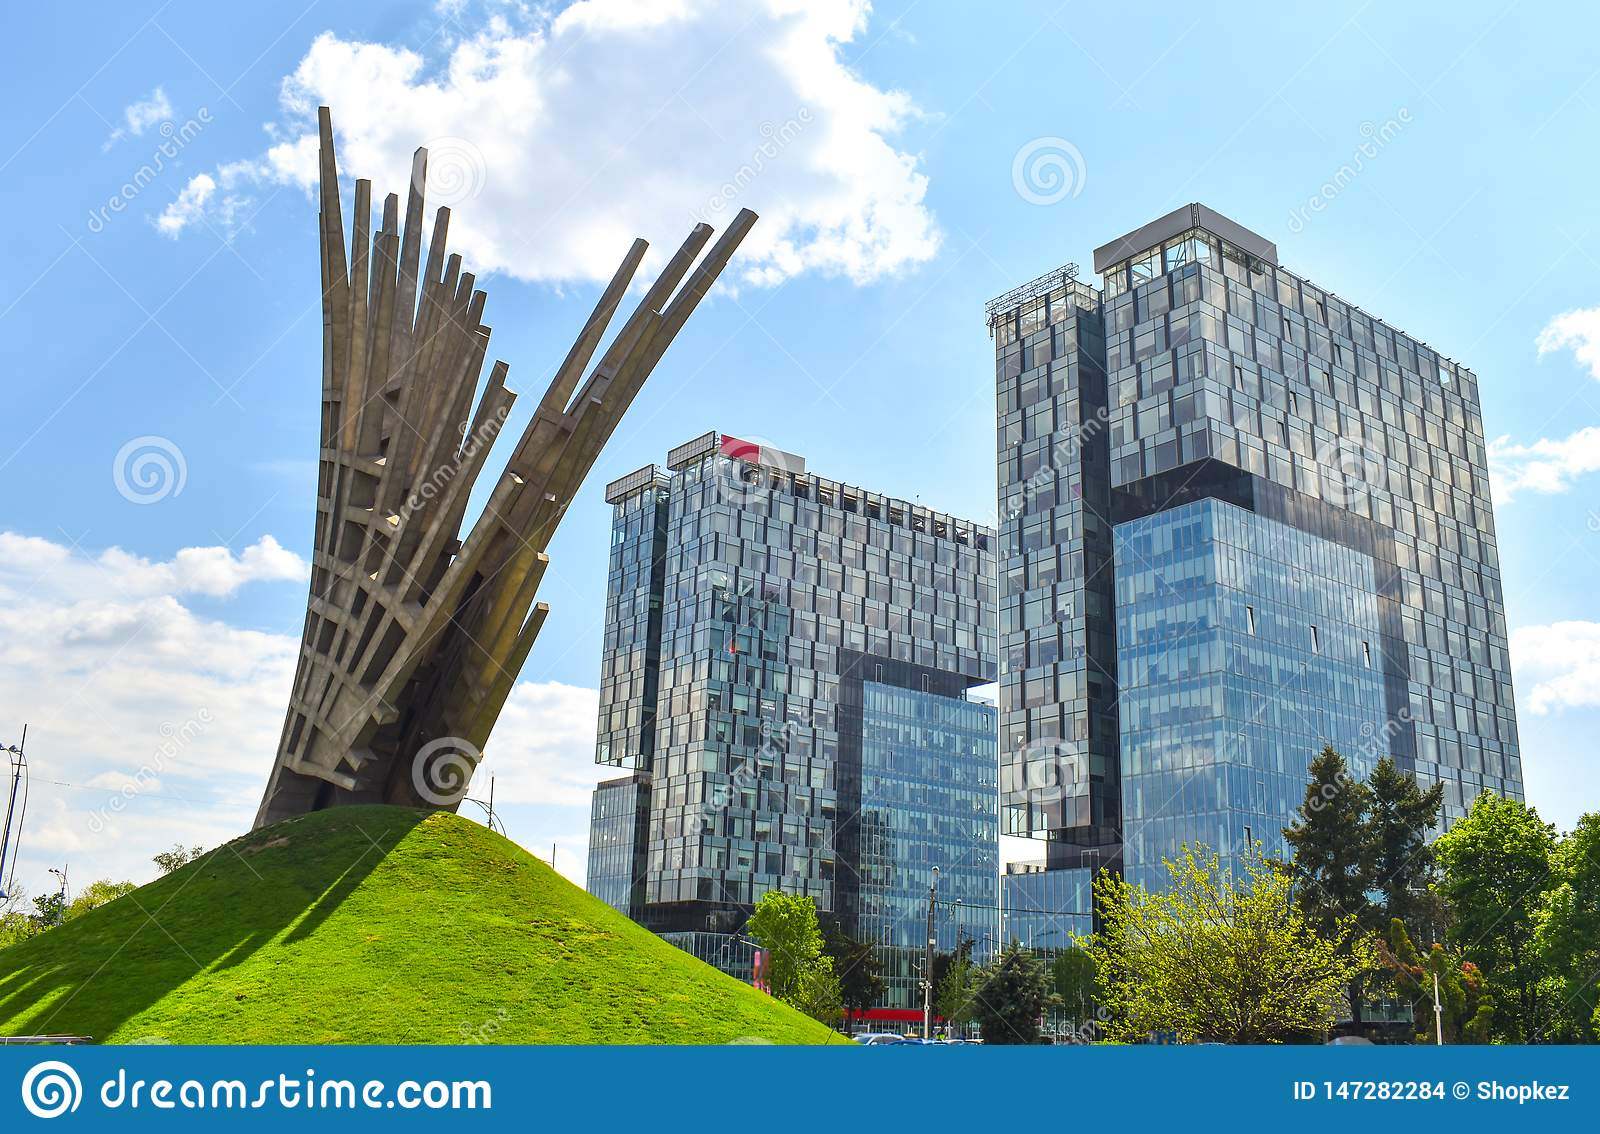 Abstract statue in front of the City Gate Towers, two class A office buildings located in Press Square of Bucharest, capital of